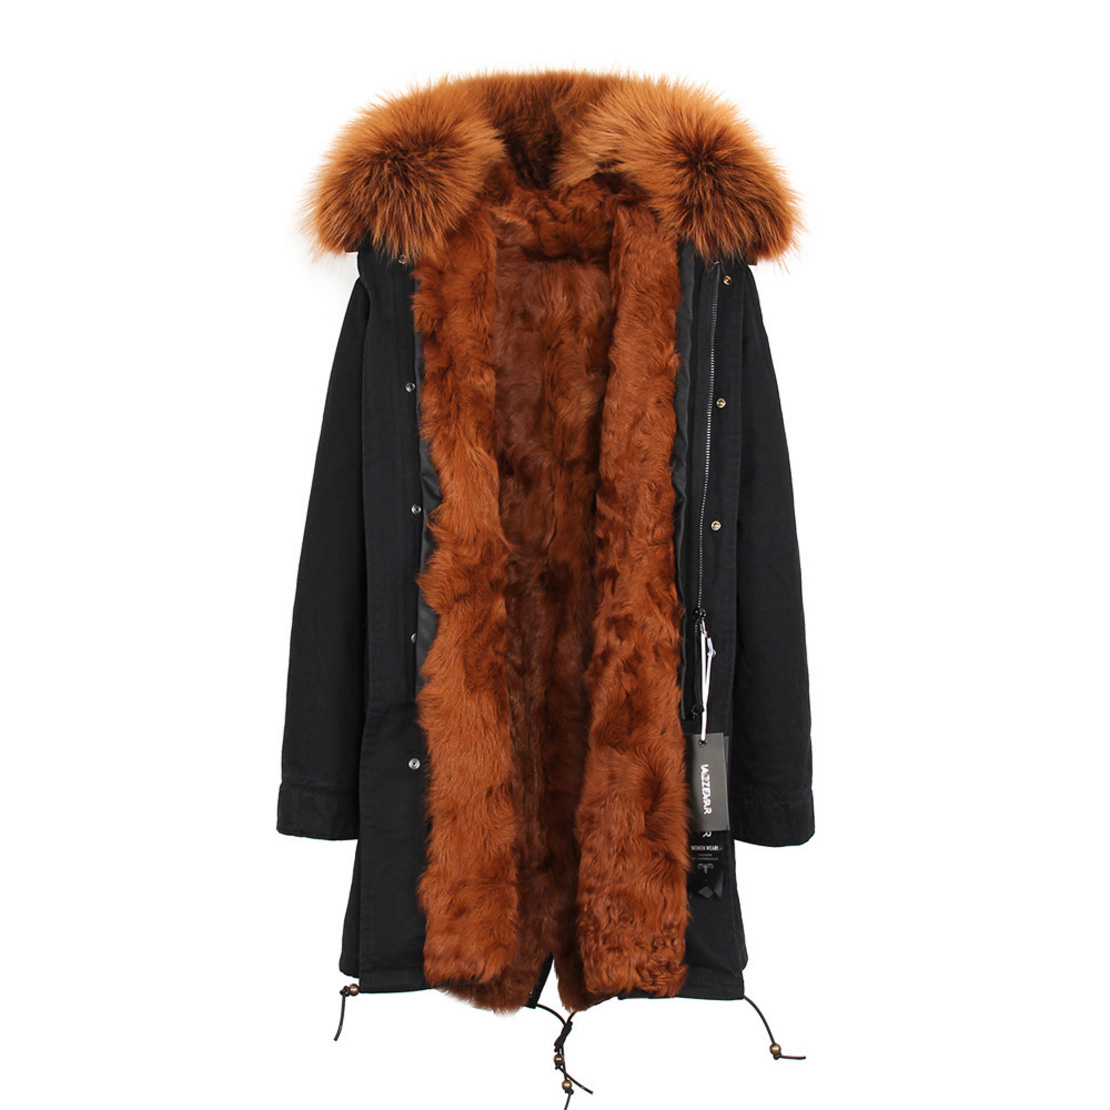 Raccoon Fur Trimmed Hooded Parka with Detachable Lamb Fur Liner 132-21